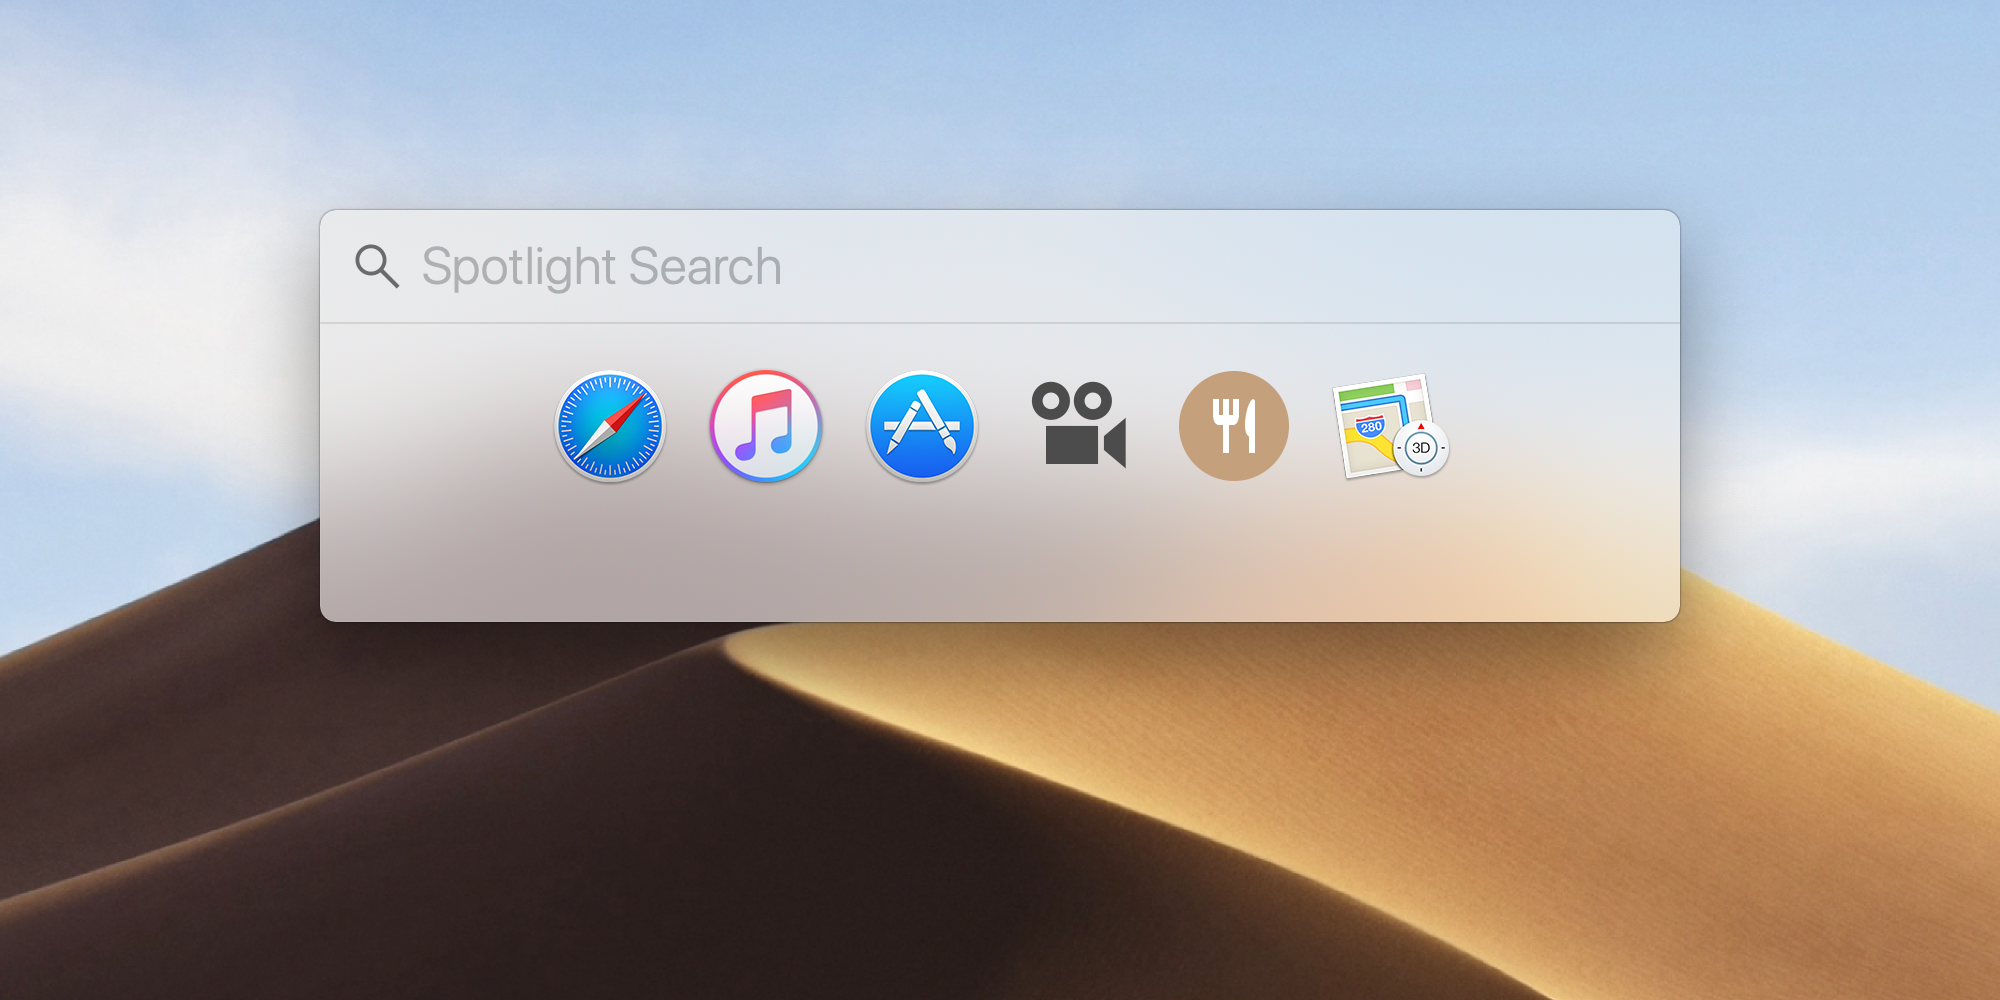 MacOS Spotlight to quickly find anything on your Mac.